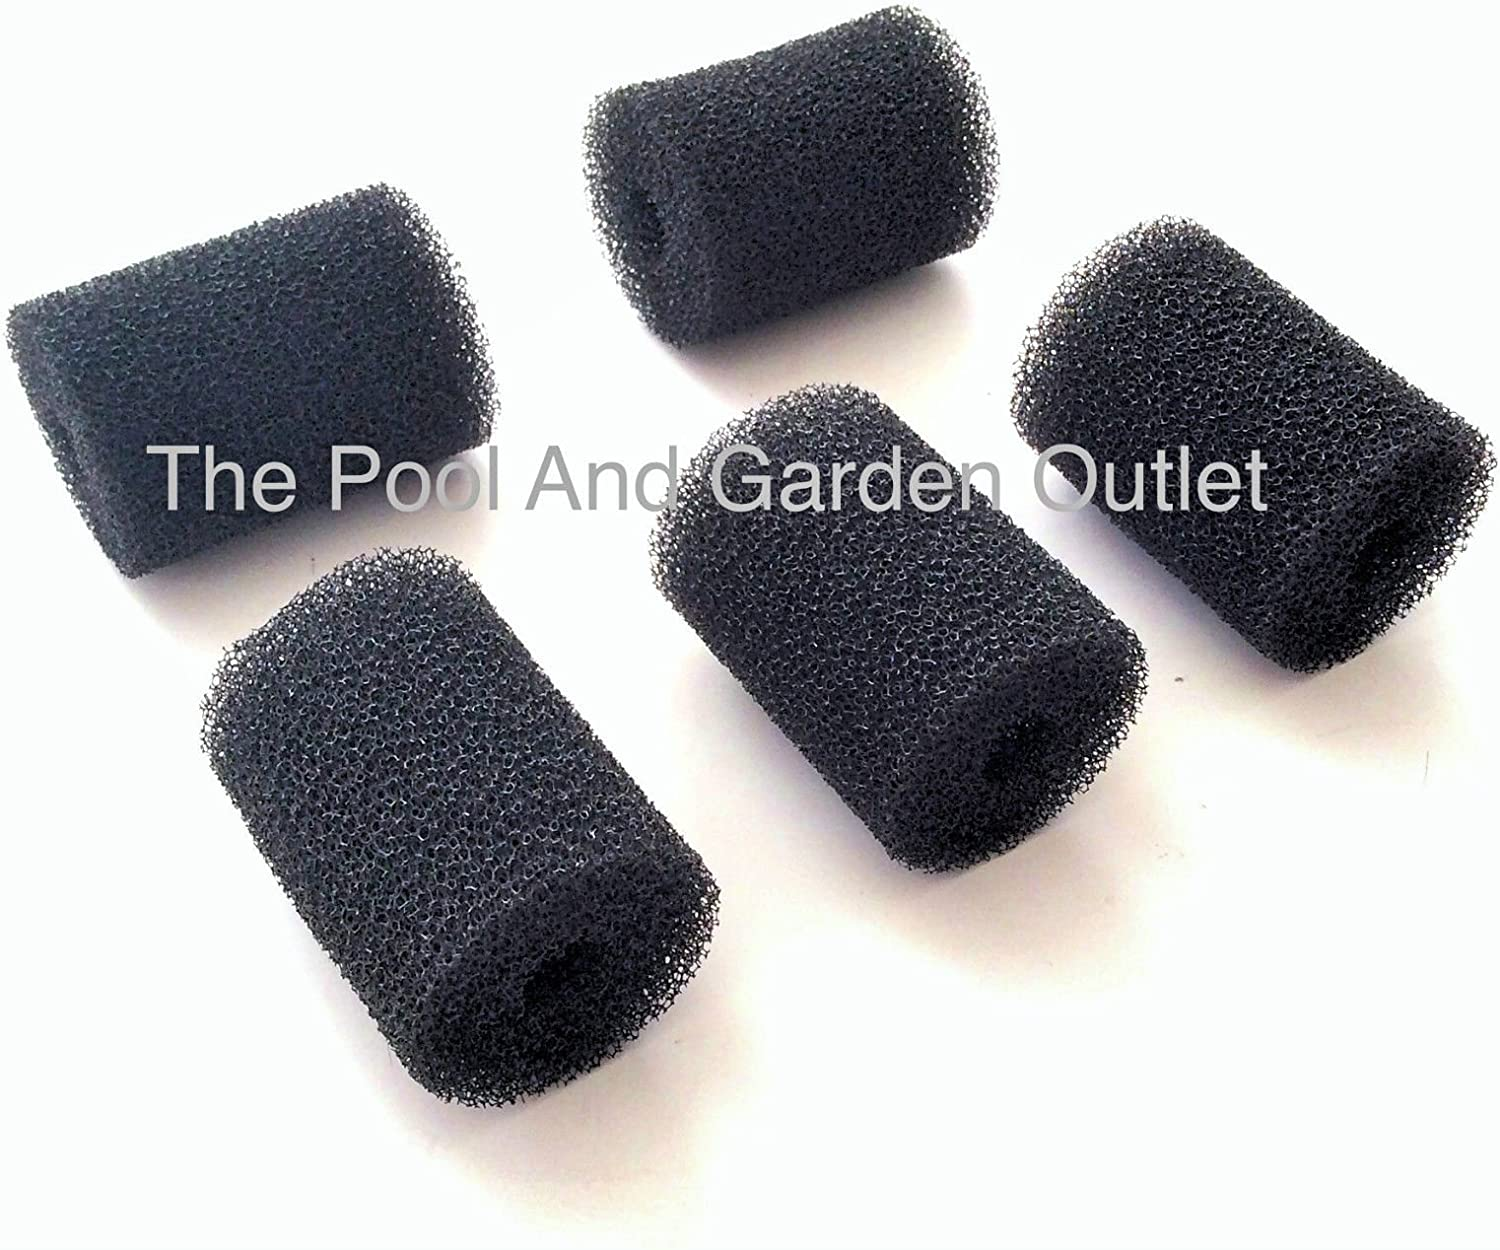 Pack of 12 LTWHOME High Density Sweep Hose Scrubber Replacement Fit for Polaris 180 280 360 380 3900 Sport Sweep Pool Cleaner 9-100-3105